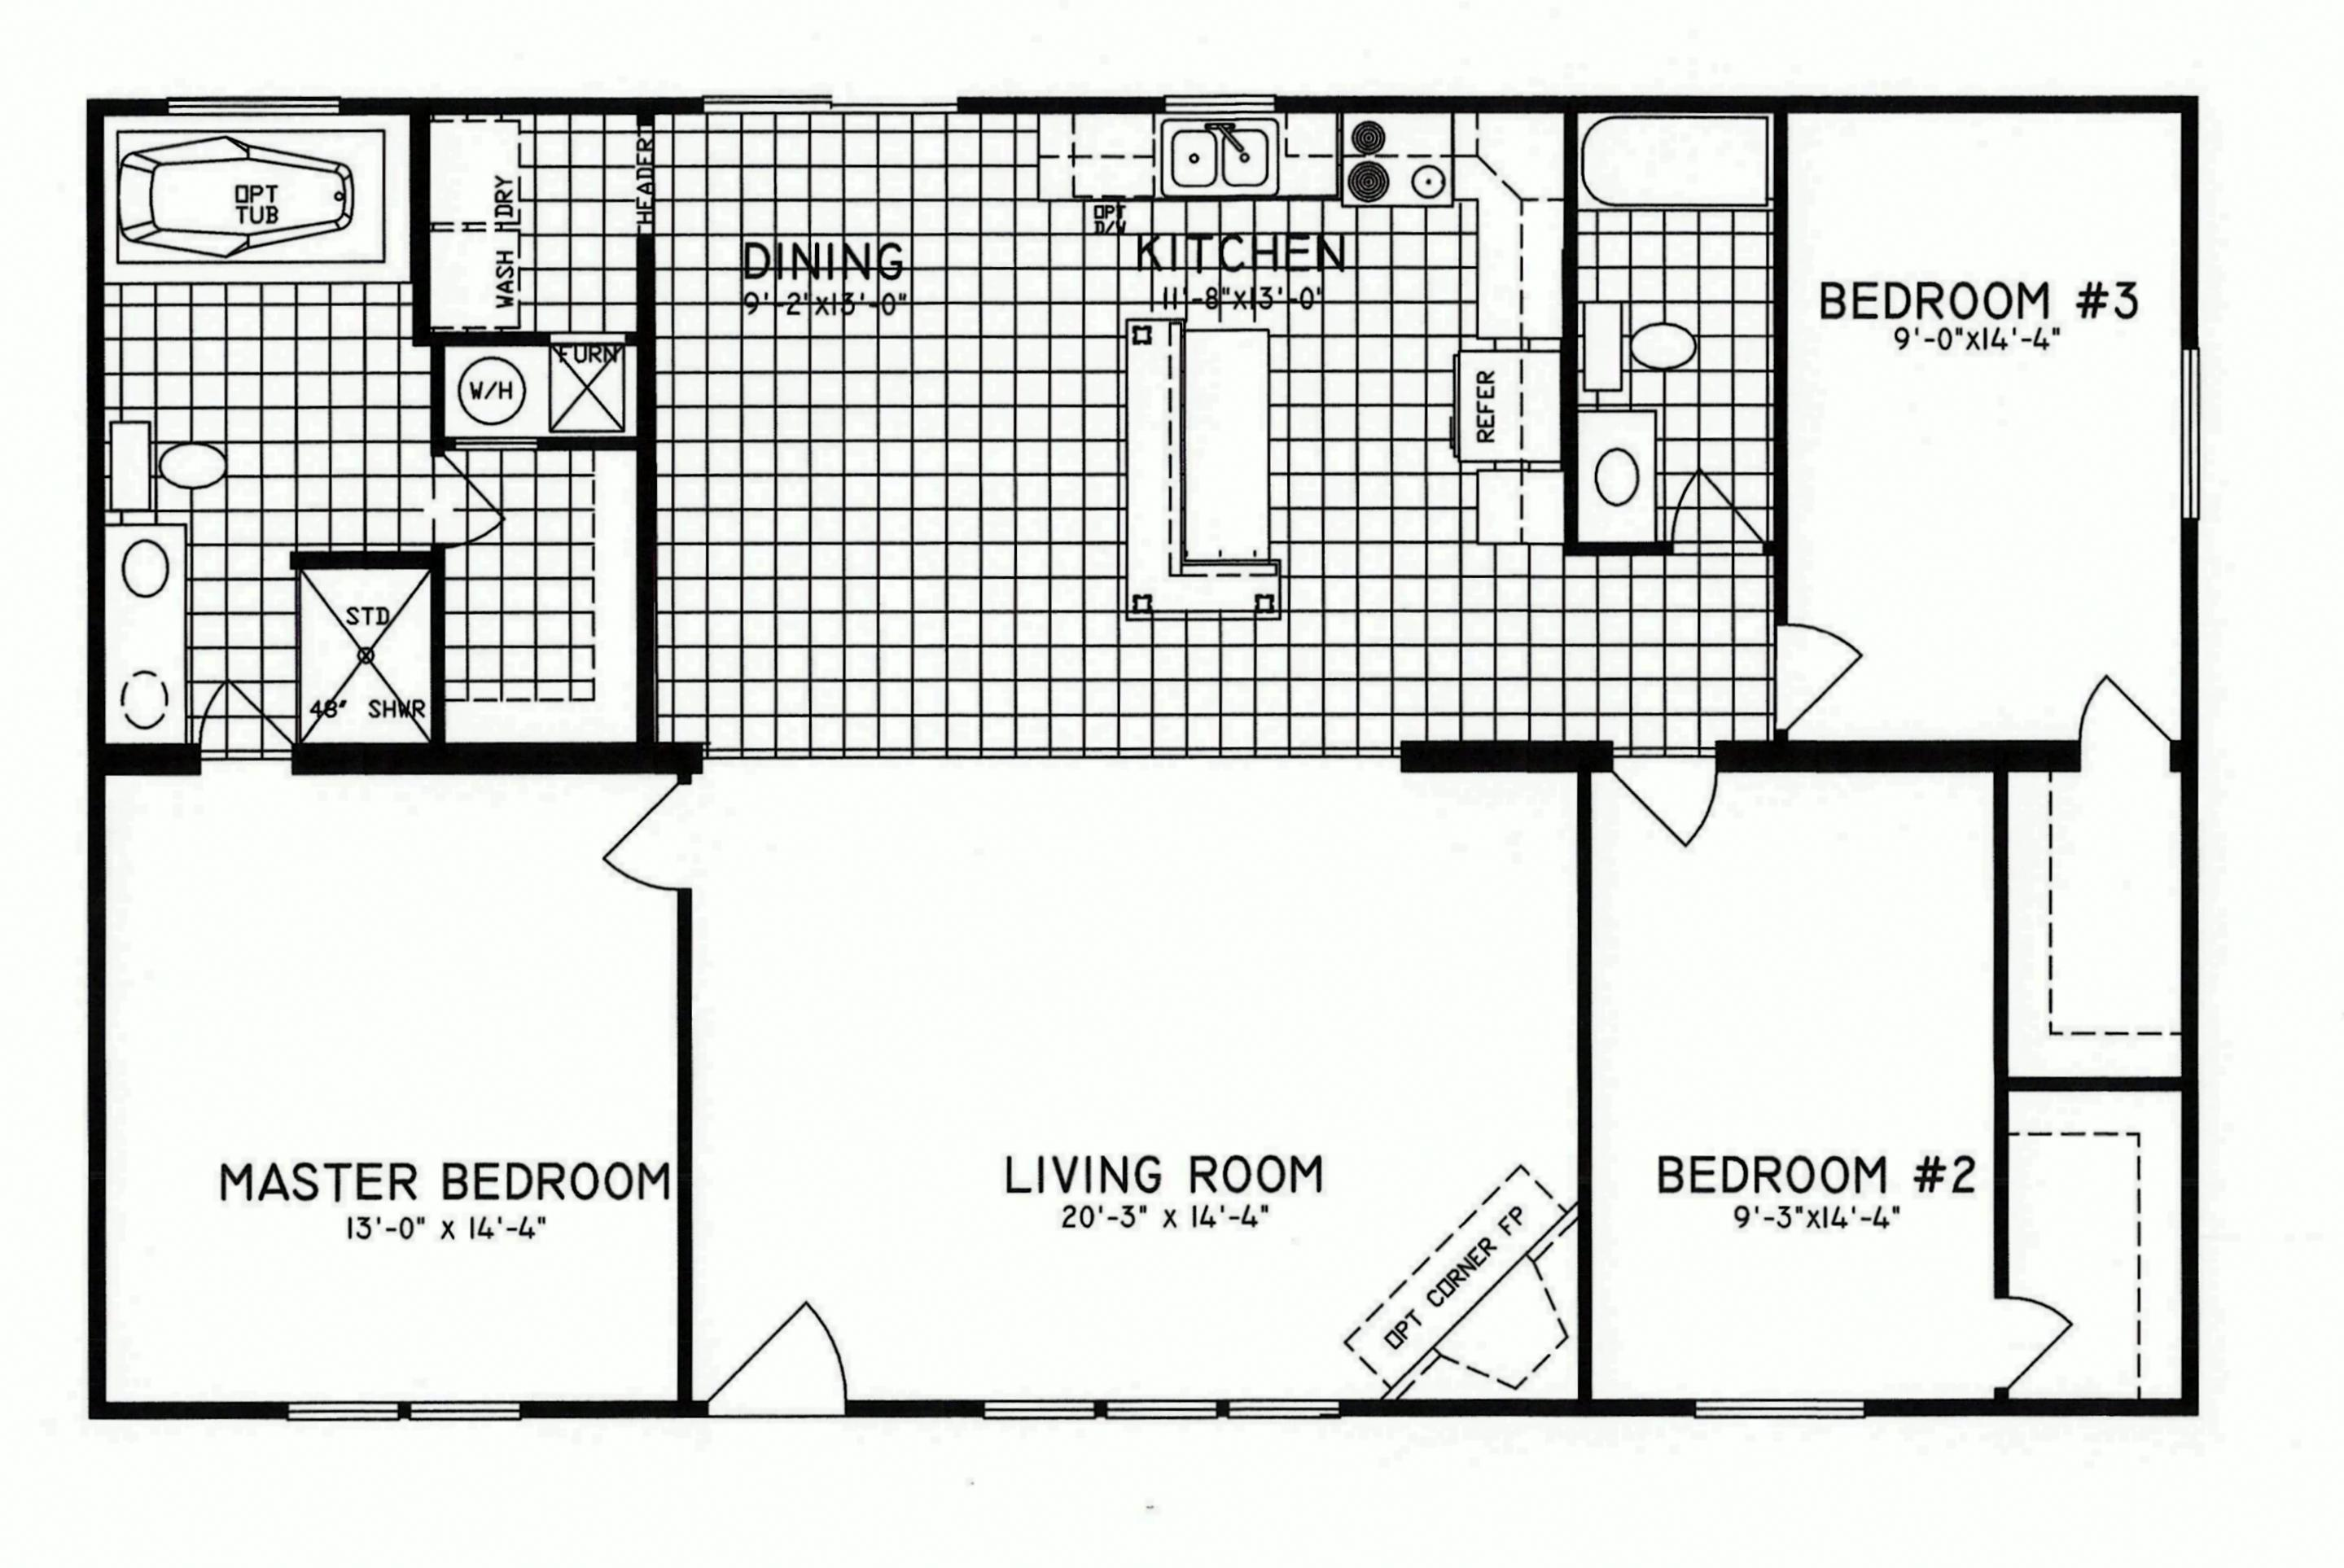 3 bedroom floor plan c 8206 hawks homes manufactured for 3 bedroom modular home floor plans